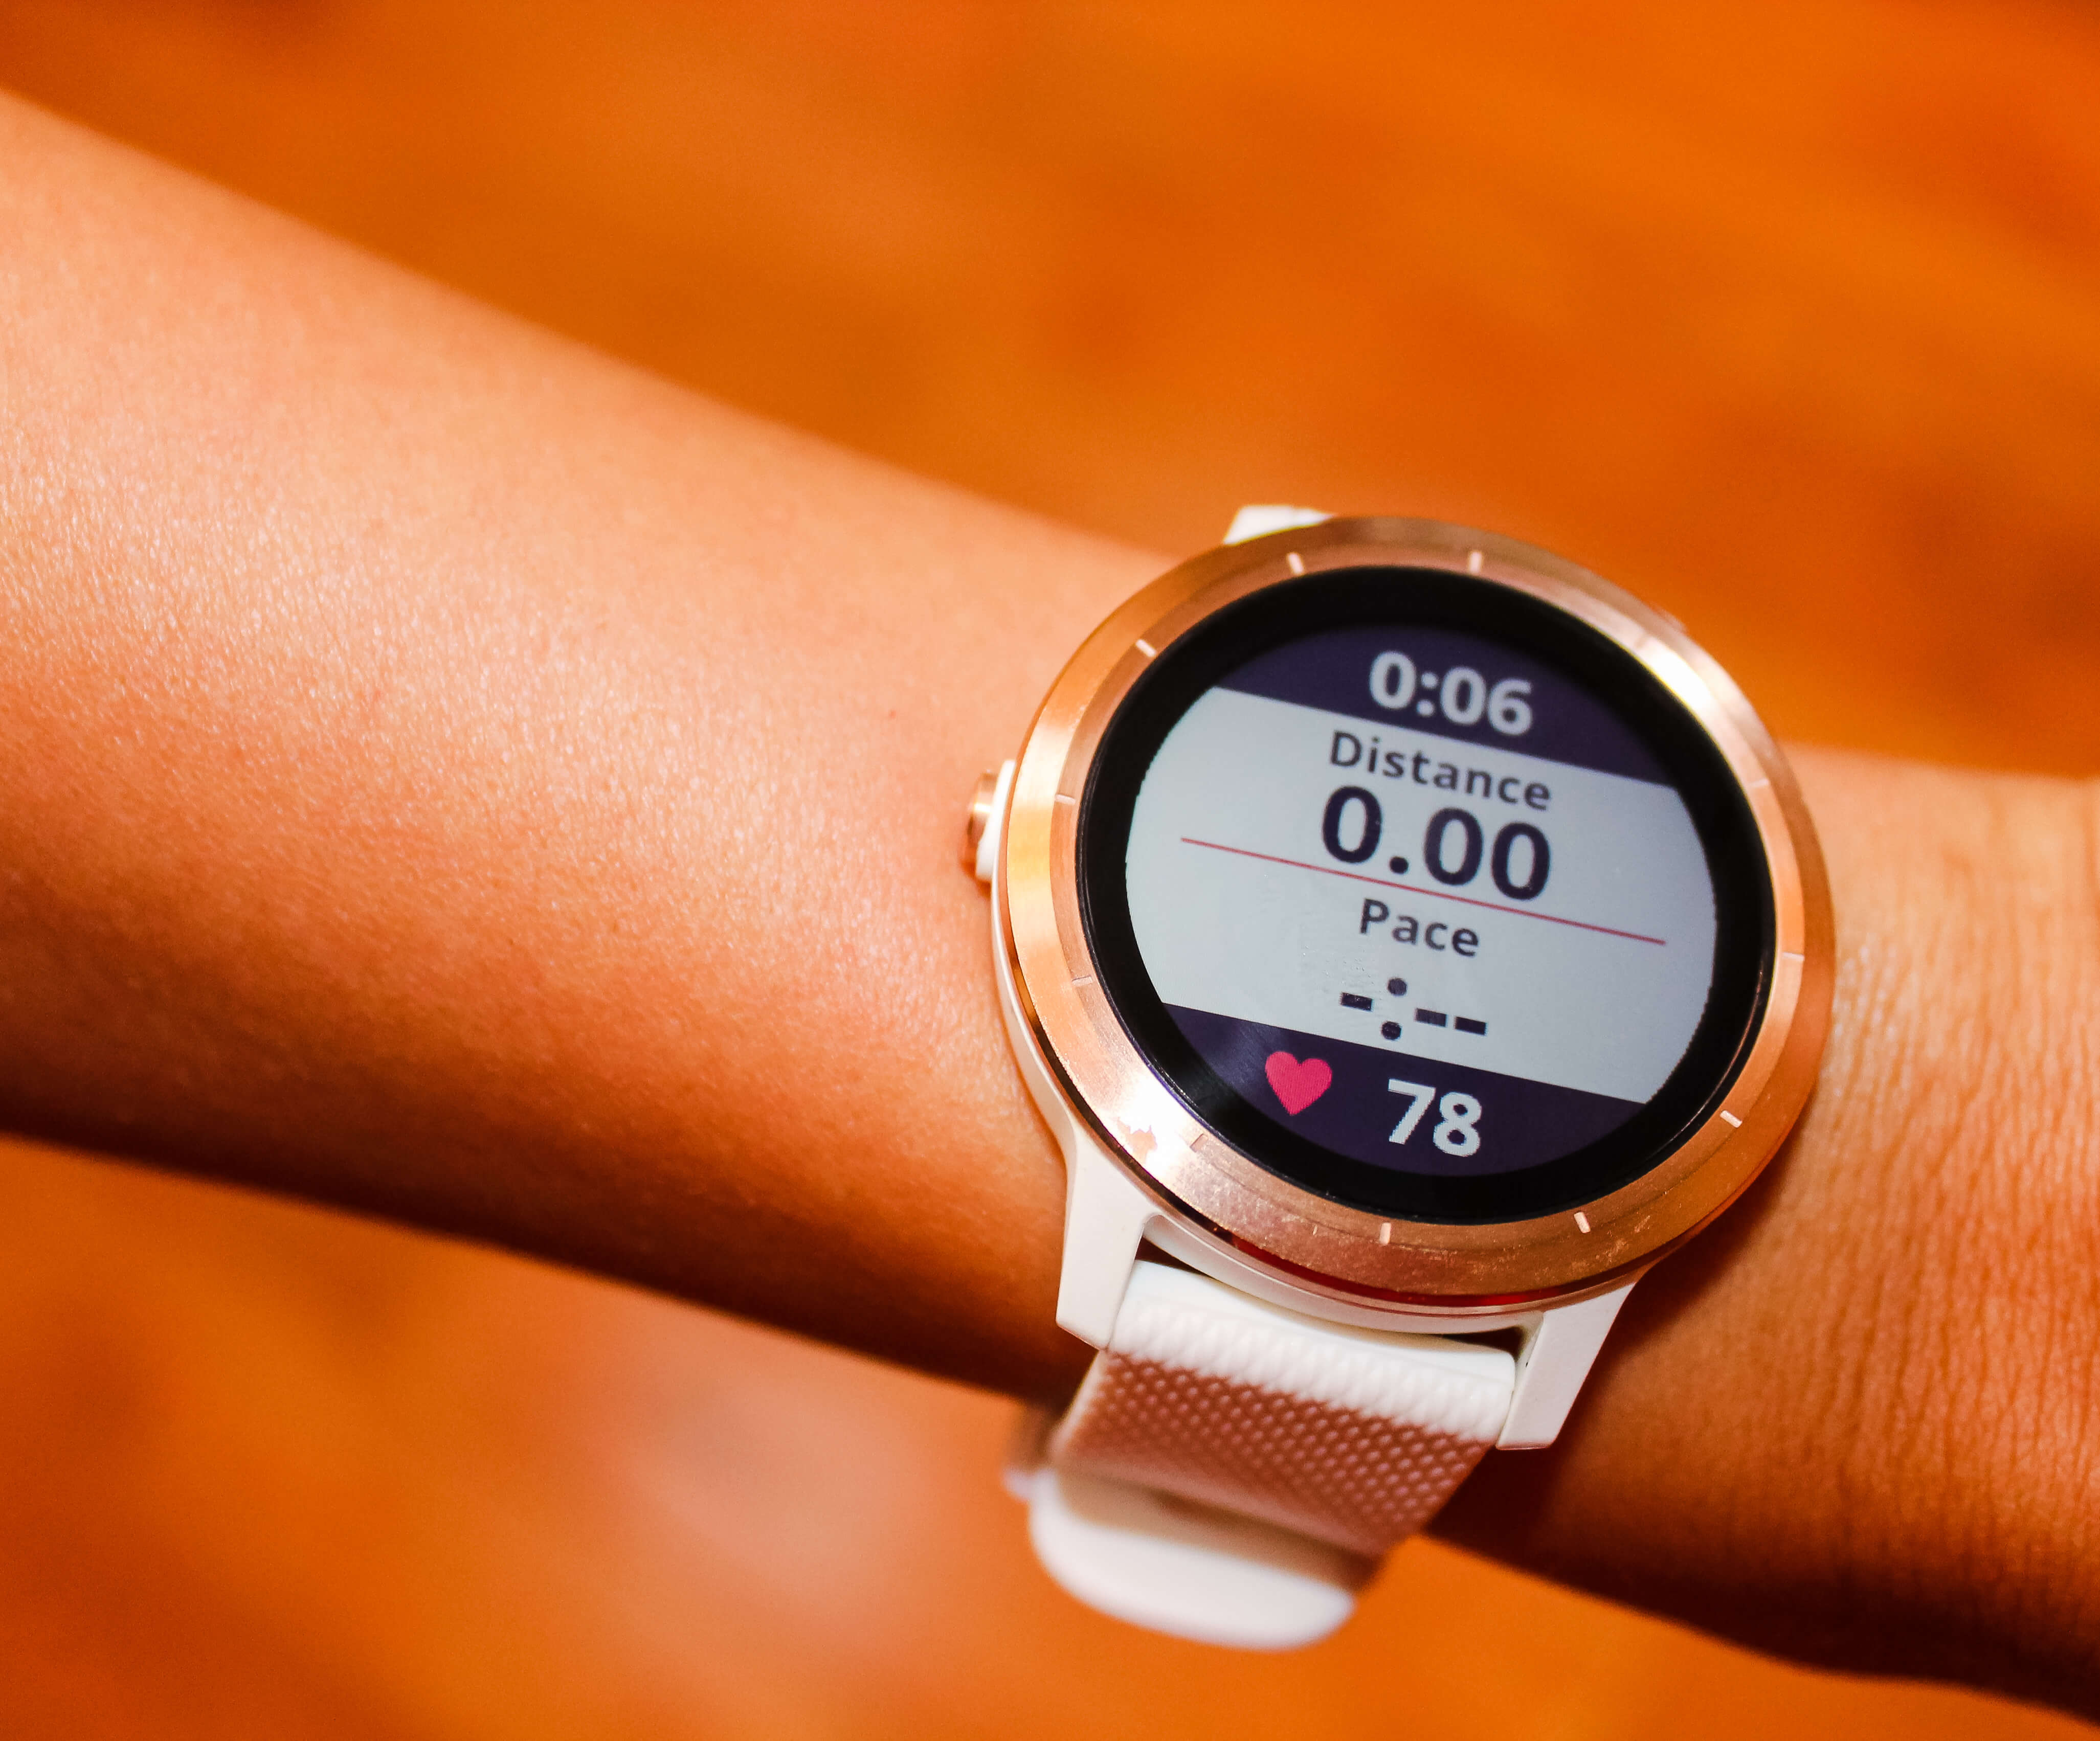 Tips to Using the Garmin Vivoactive 3 for Runners | RunnerClick